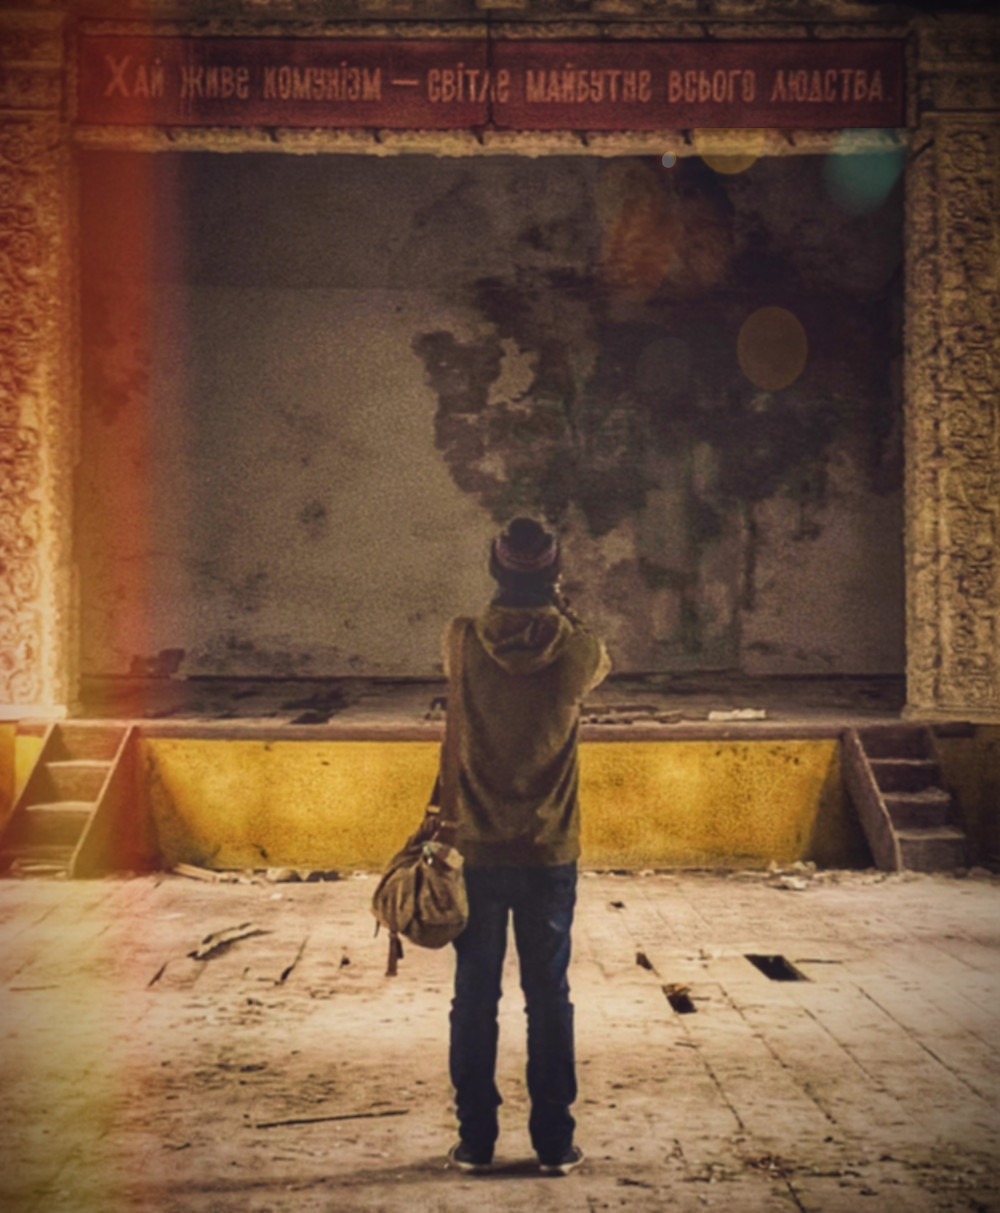 a picture of me taken from the rear in an old abandoned theatre in Chernobyl, Ukrain